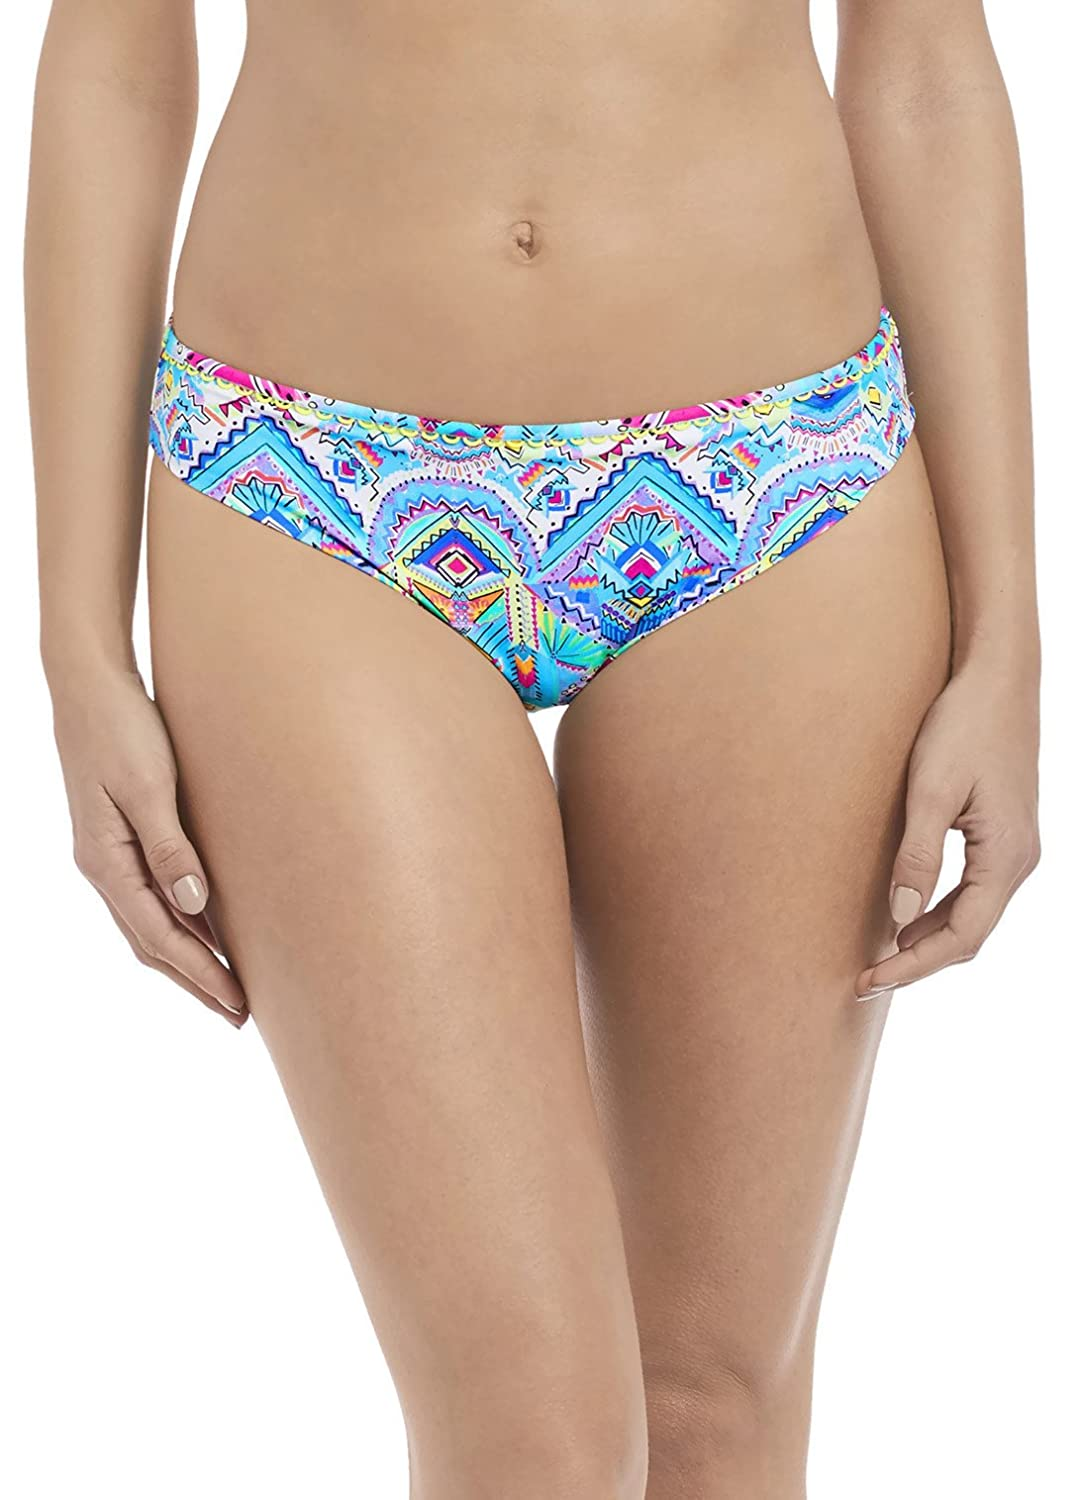 CS MUI Freya New Native AS3533 Classic Bikini Brief Multi